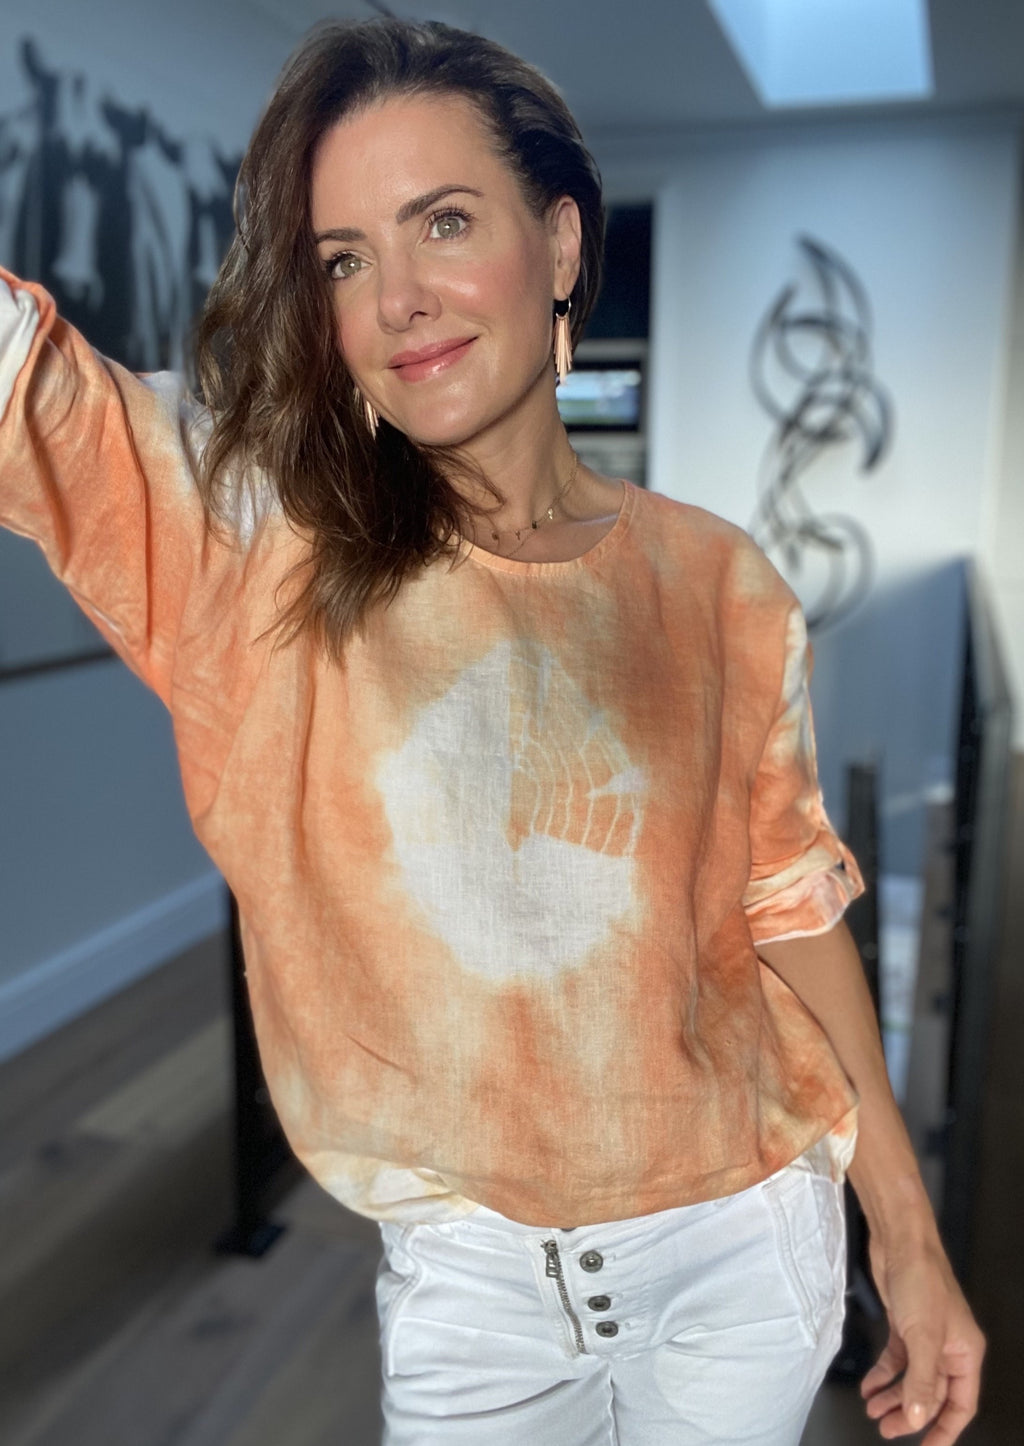 Everything to Me Top - Orange, by Ridley the Label  This modern 100% Linen Top features a unique tie dye effect in fresh orange and white to pair back beautifully with your white pants and jeans, and light denims.  Features:  Relaxed fit  Scoop neck  7/8th sleeves with button tab so it can be rolled and worn as a short sleeve  Rounded hemline  Made in Italy